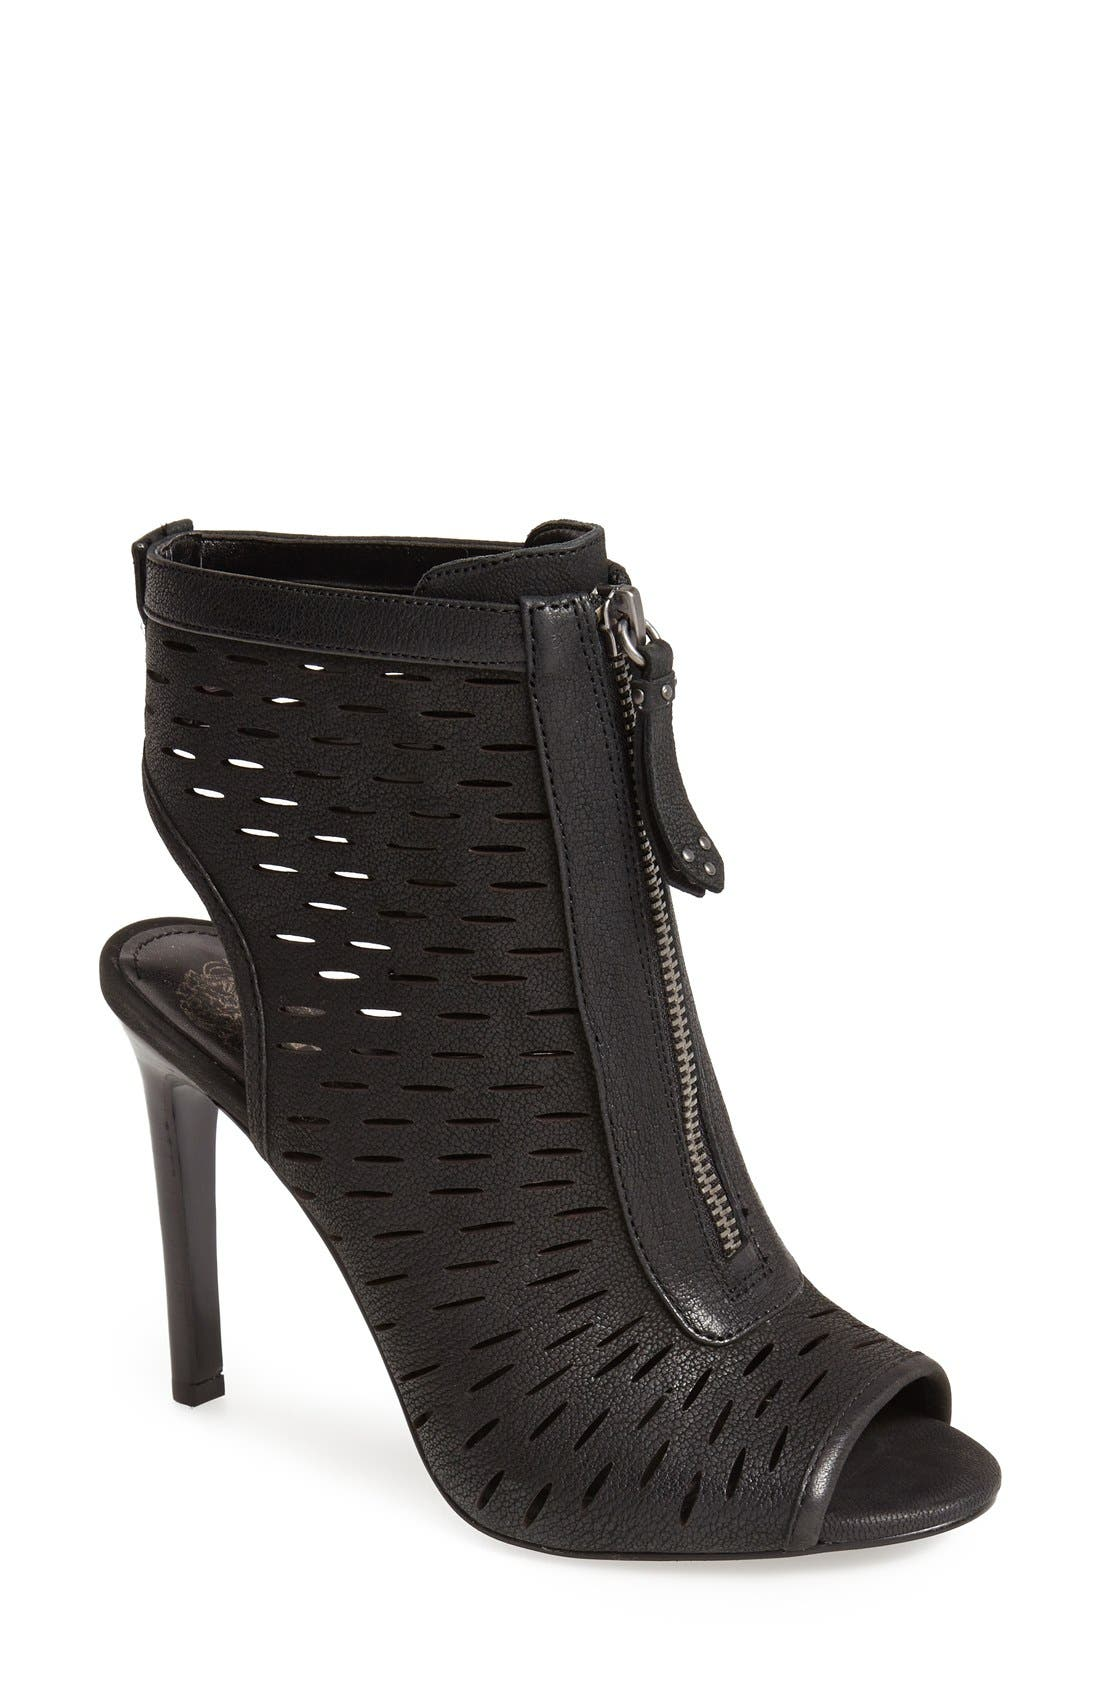 VINCE CAMUTO, 'Waver' Peep Toe Bootie, Main thumbnail 1, color, 001